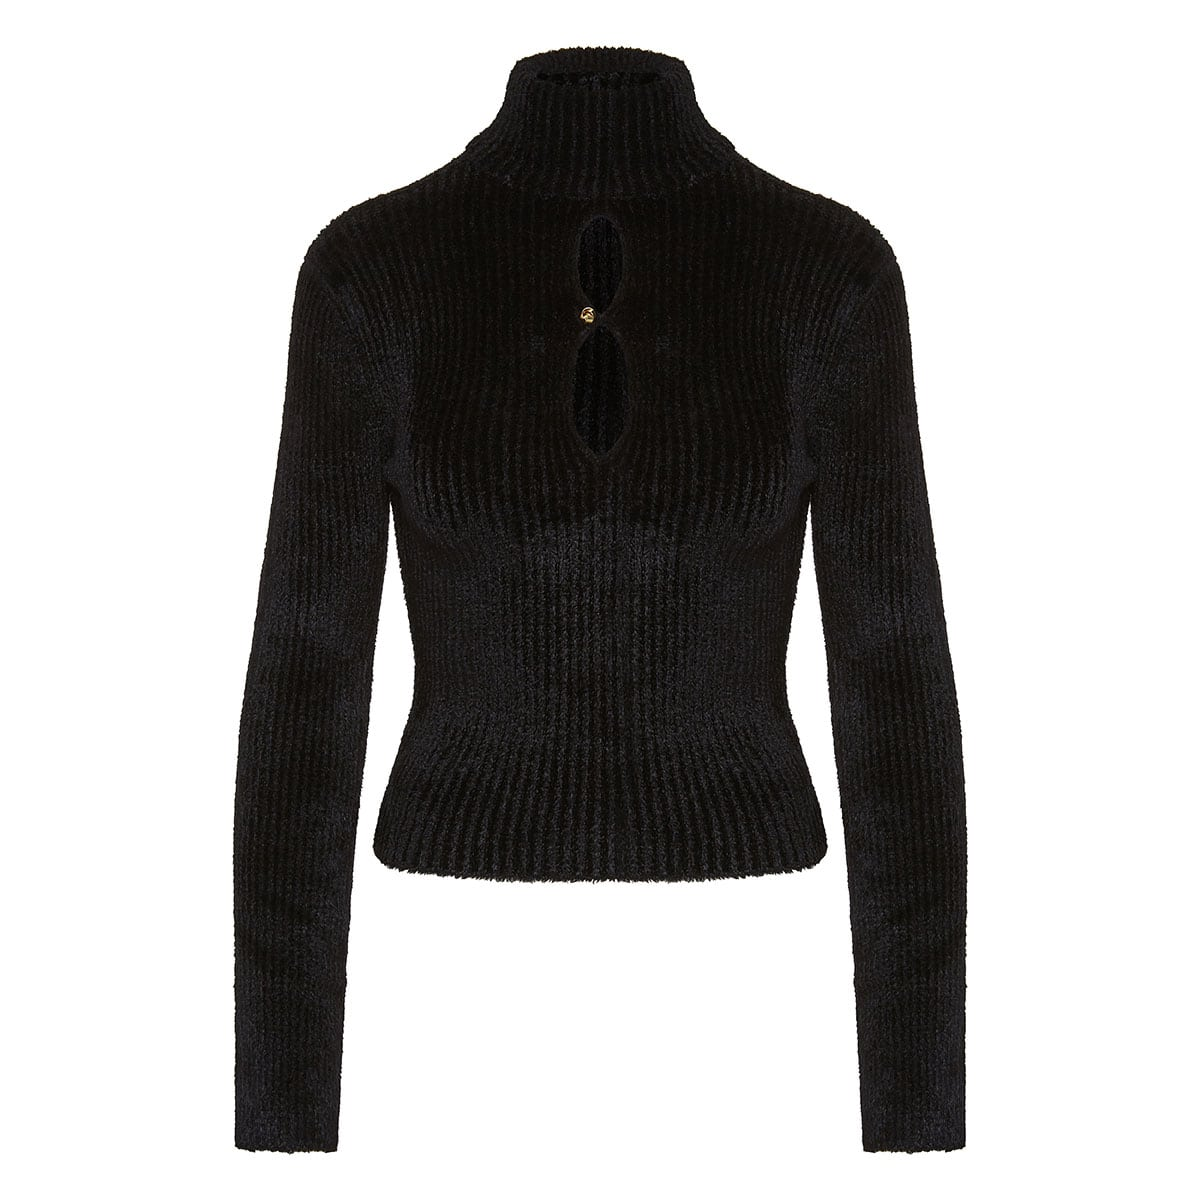 2 Moncler 1952 turtleneck chenille sweater